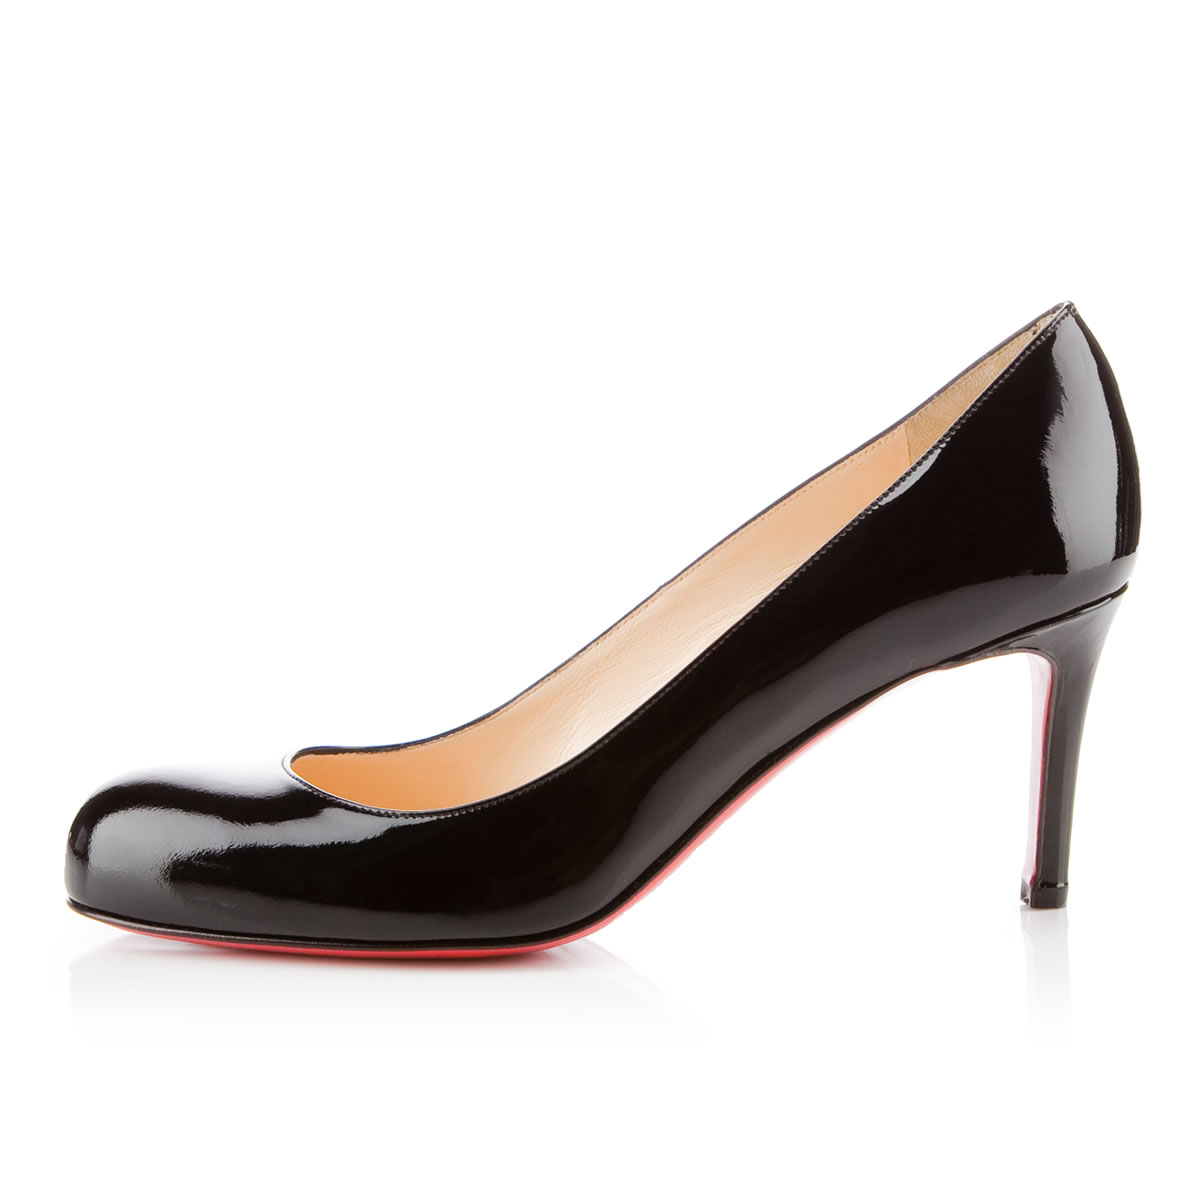 christian louboutin black and nude simple pump. Black Bedroom Furniture Sets. Home Design Ideas